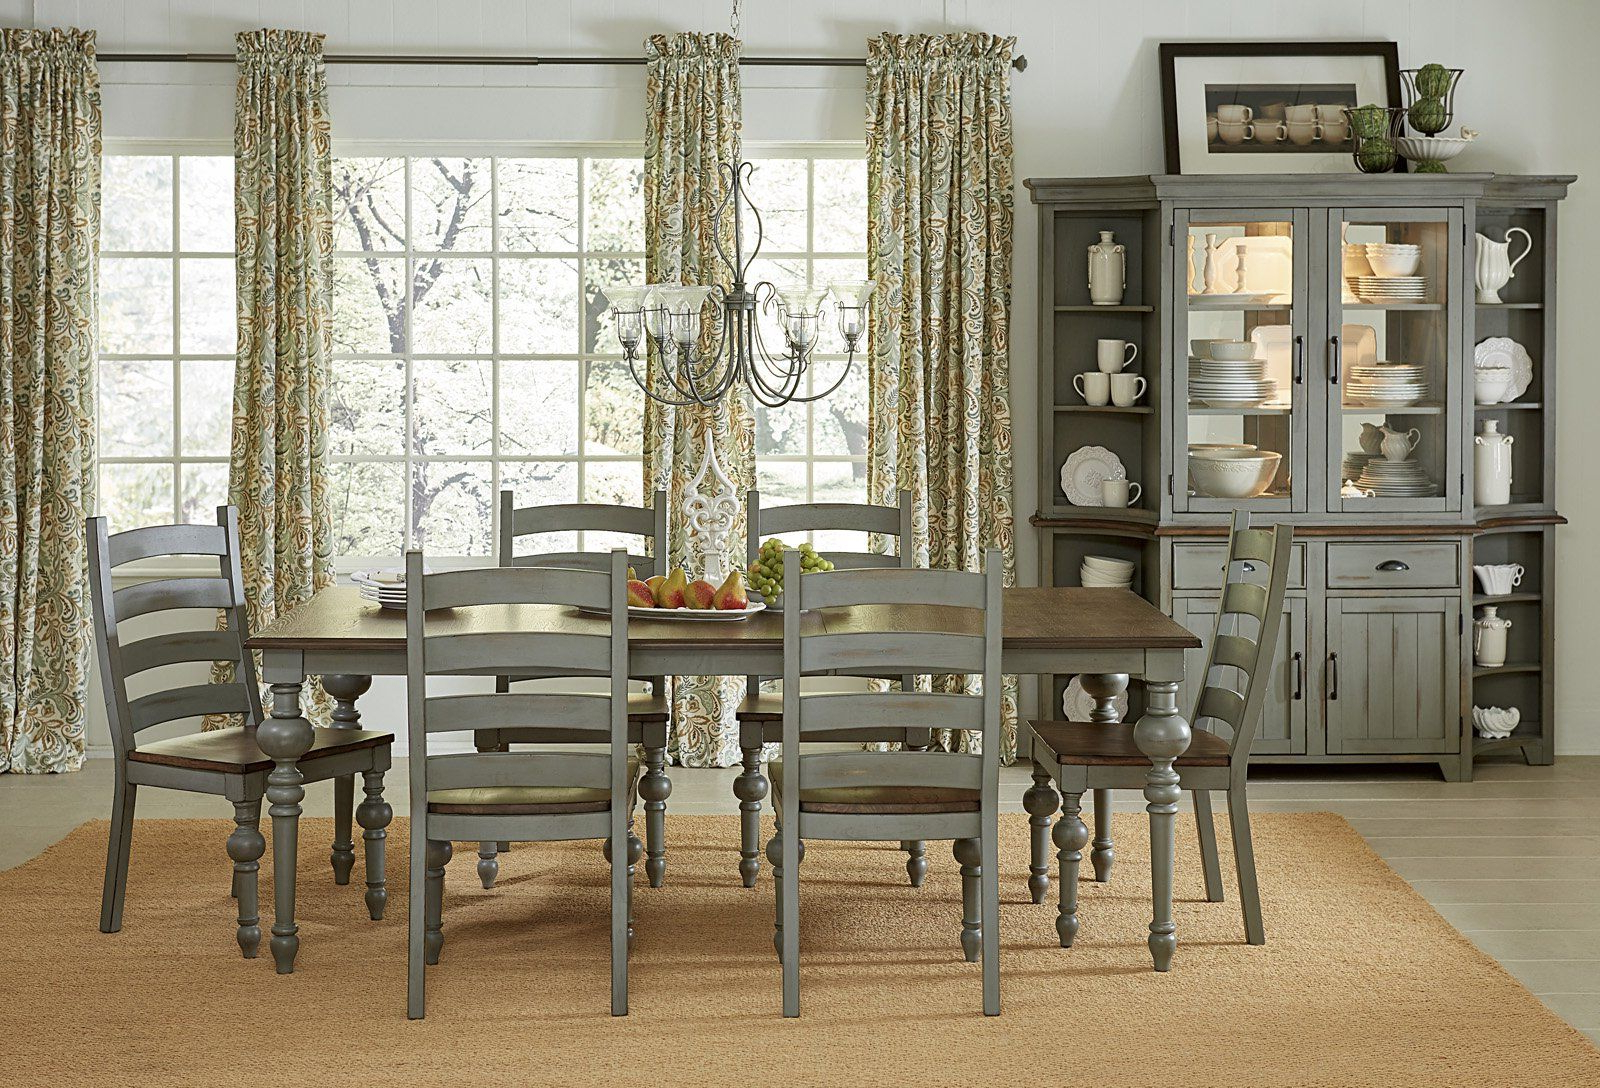 Colonnades Transitional Rectangular Dining Table Putty/oak In Favorite Transitional Rectangular Dining Tables (View 3 of 30)